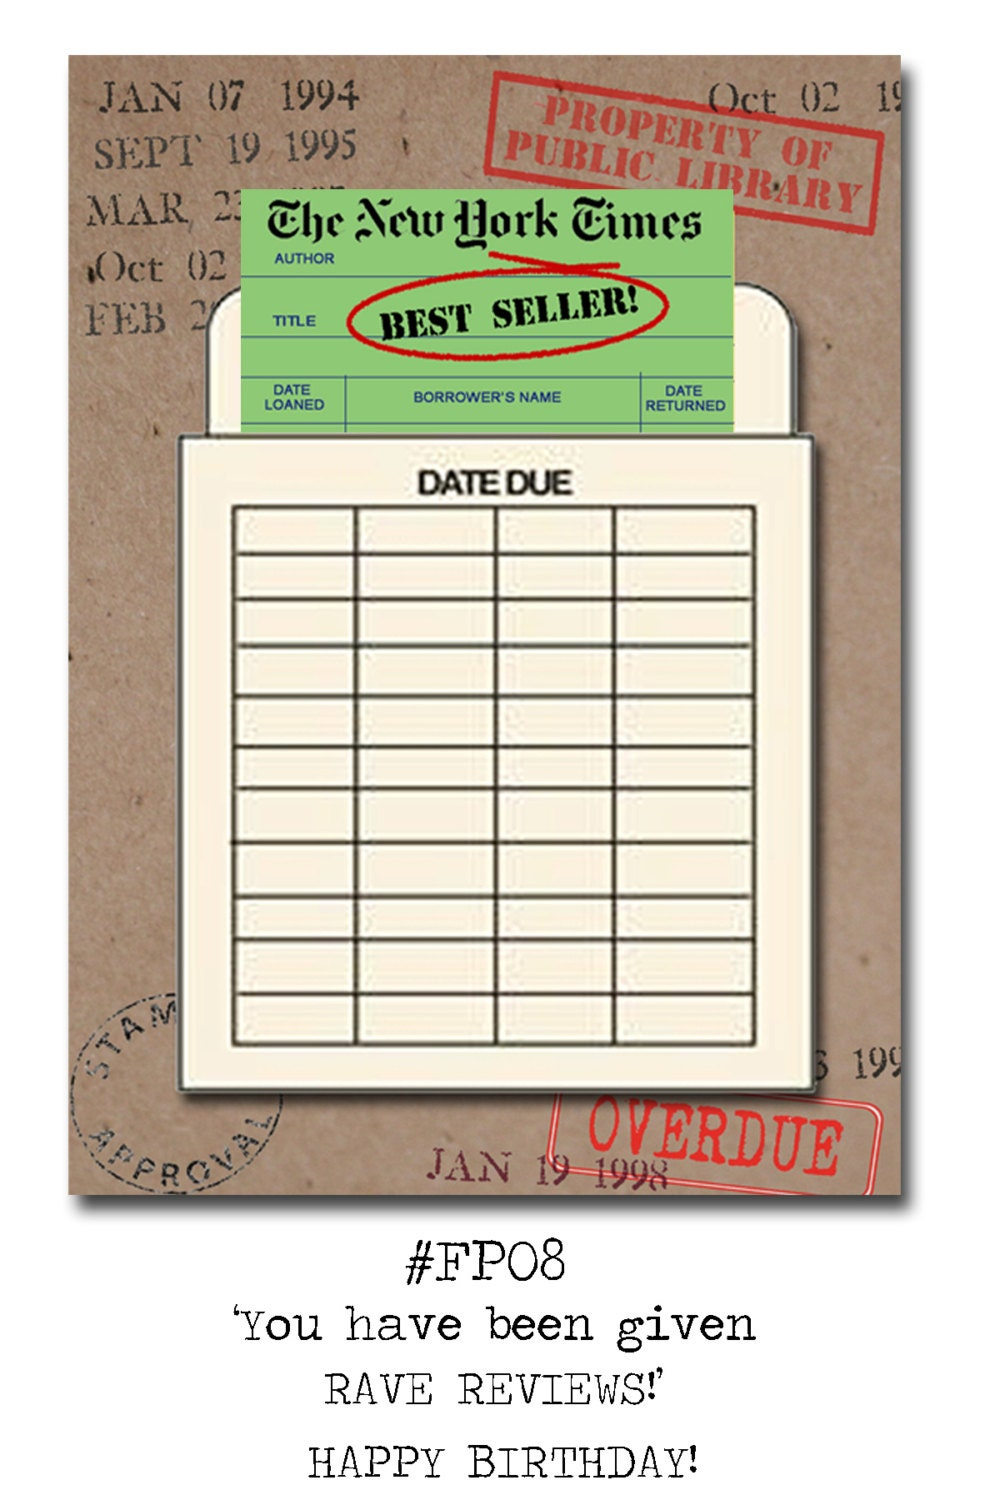 New York Times Best Seller Book Themed Birthday Card With A Vintage